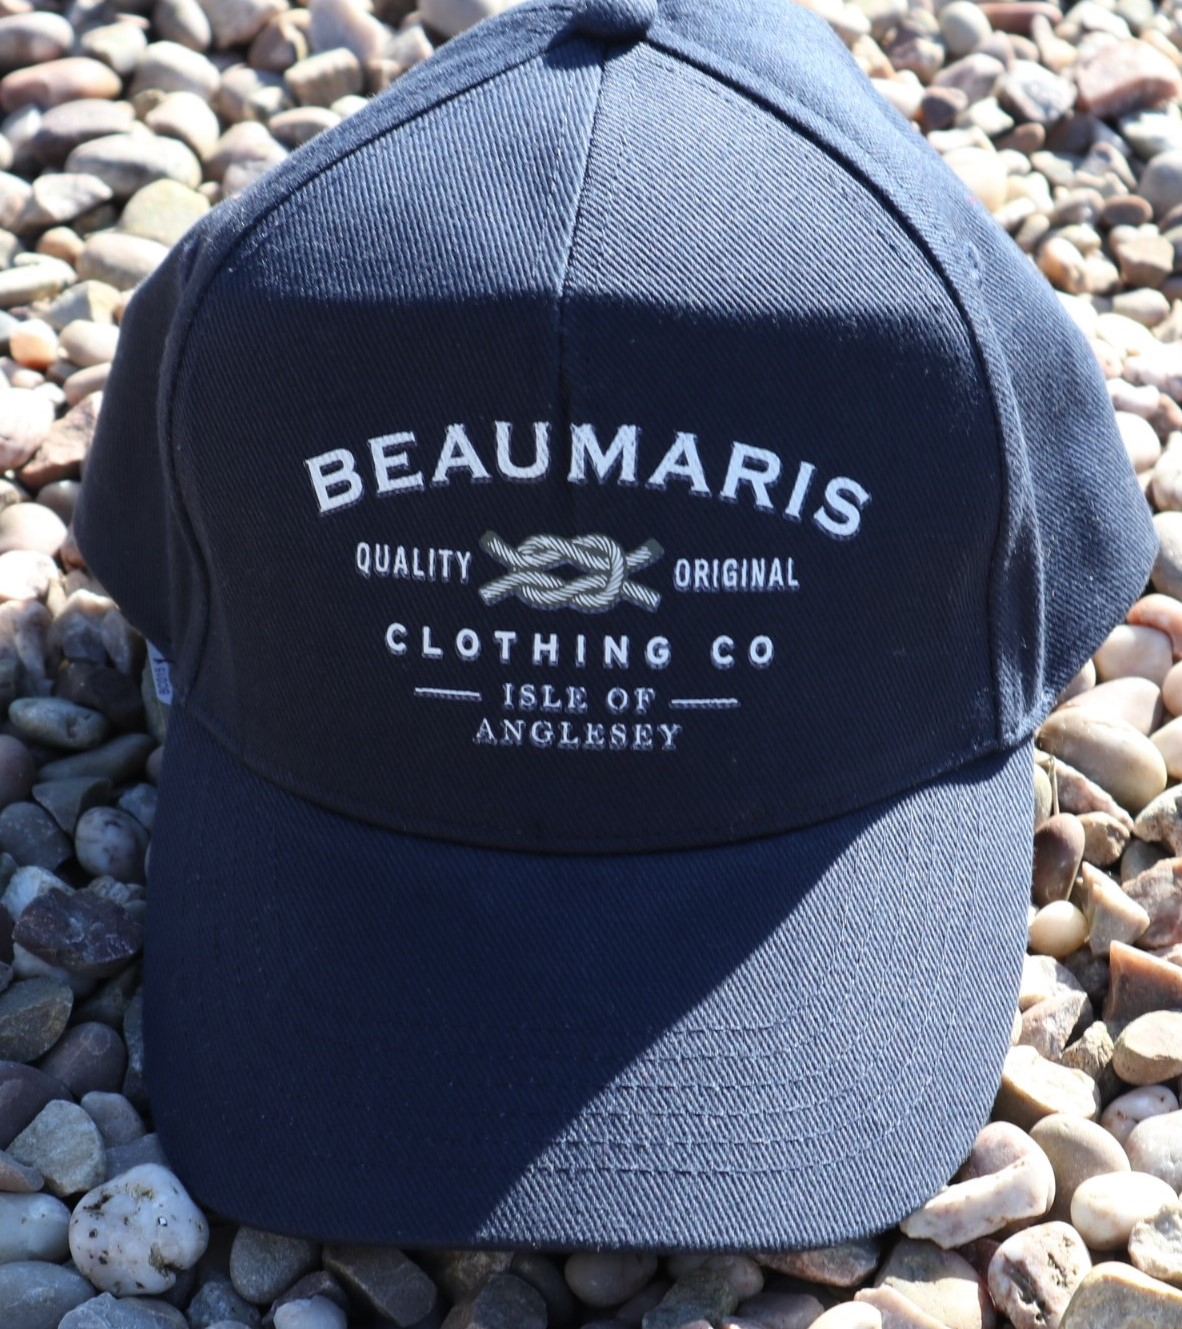 Beaumaris baseball cap